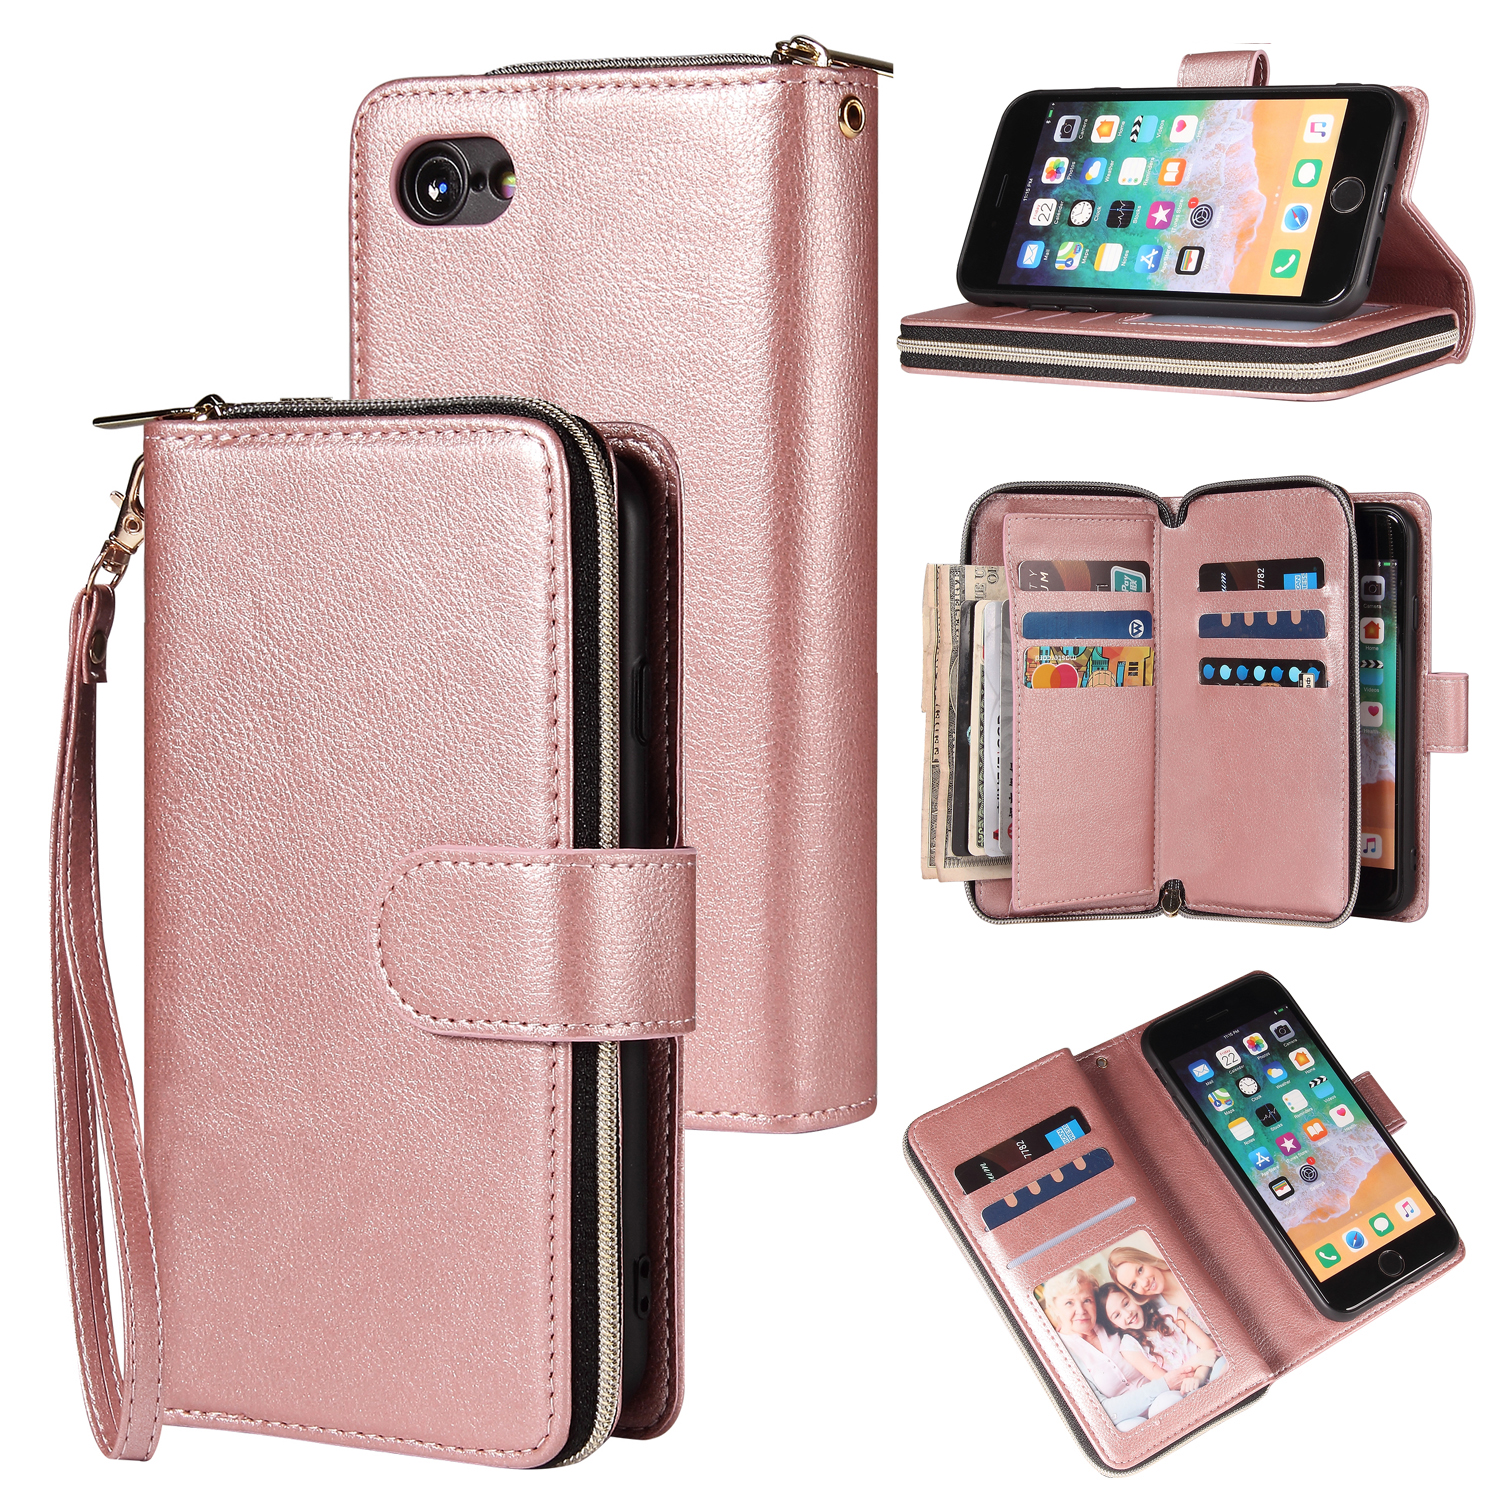 For Iphone 6/6s/6 Plus/6s Plus/7 Plus/8 Plus Pu Leather  Mobile Phone Cover Zipper Card Bag + Wrist Strap Rose gold